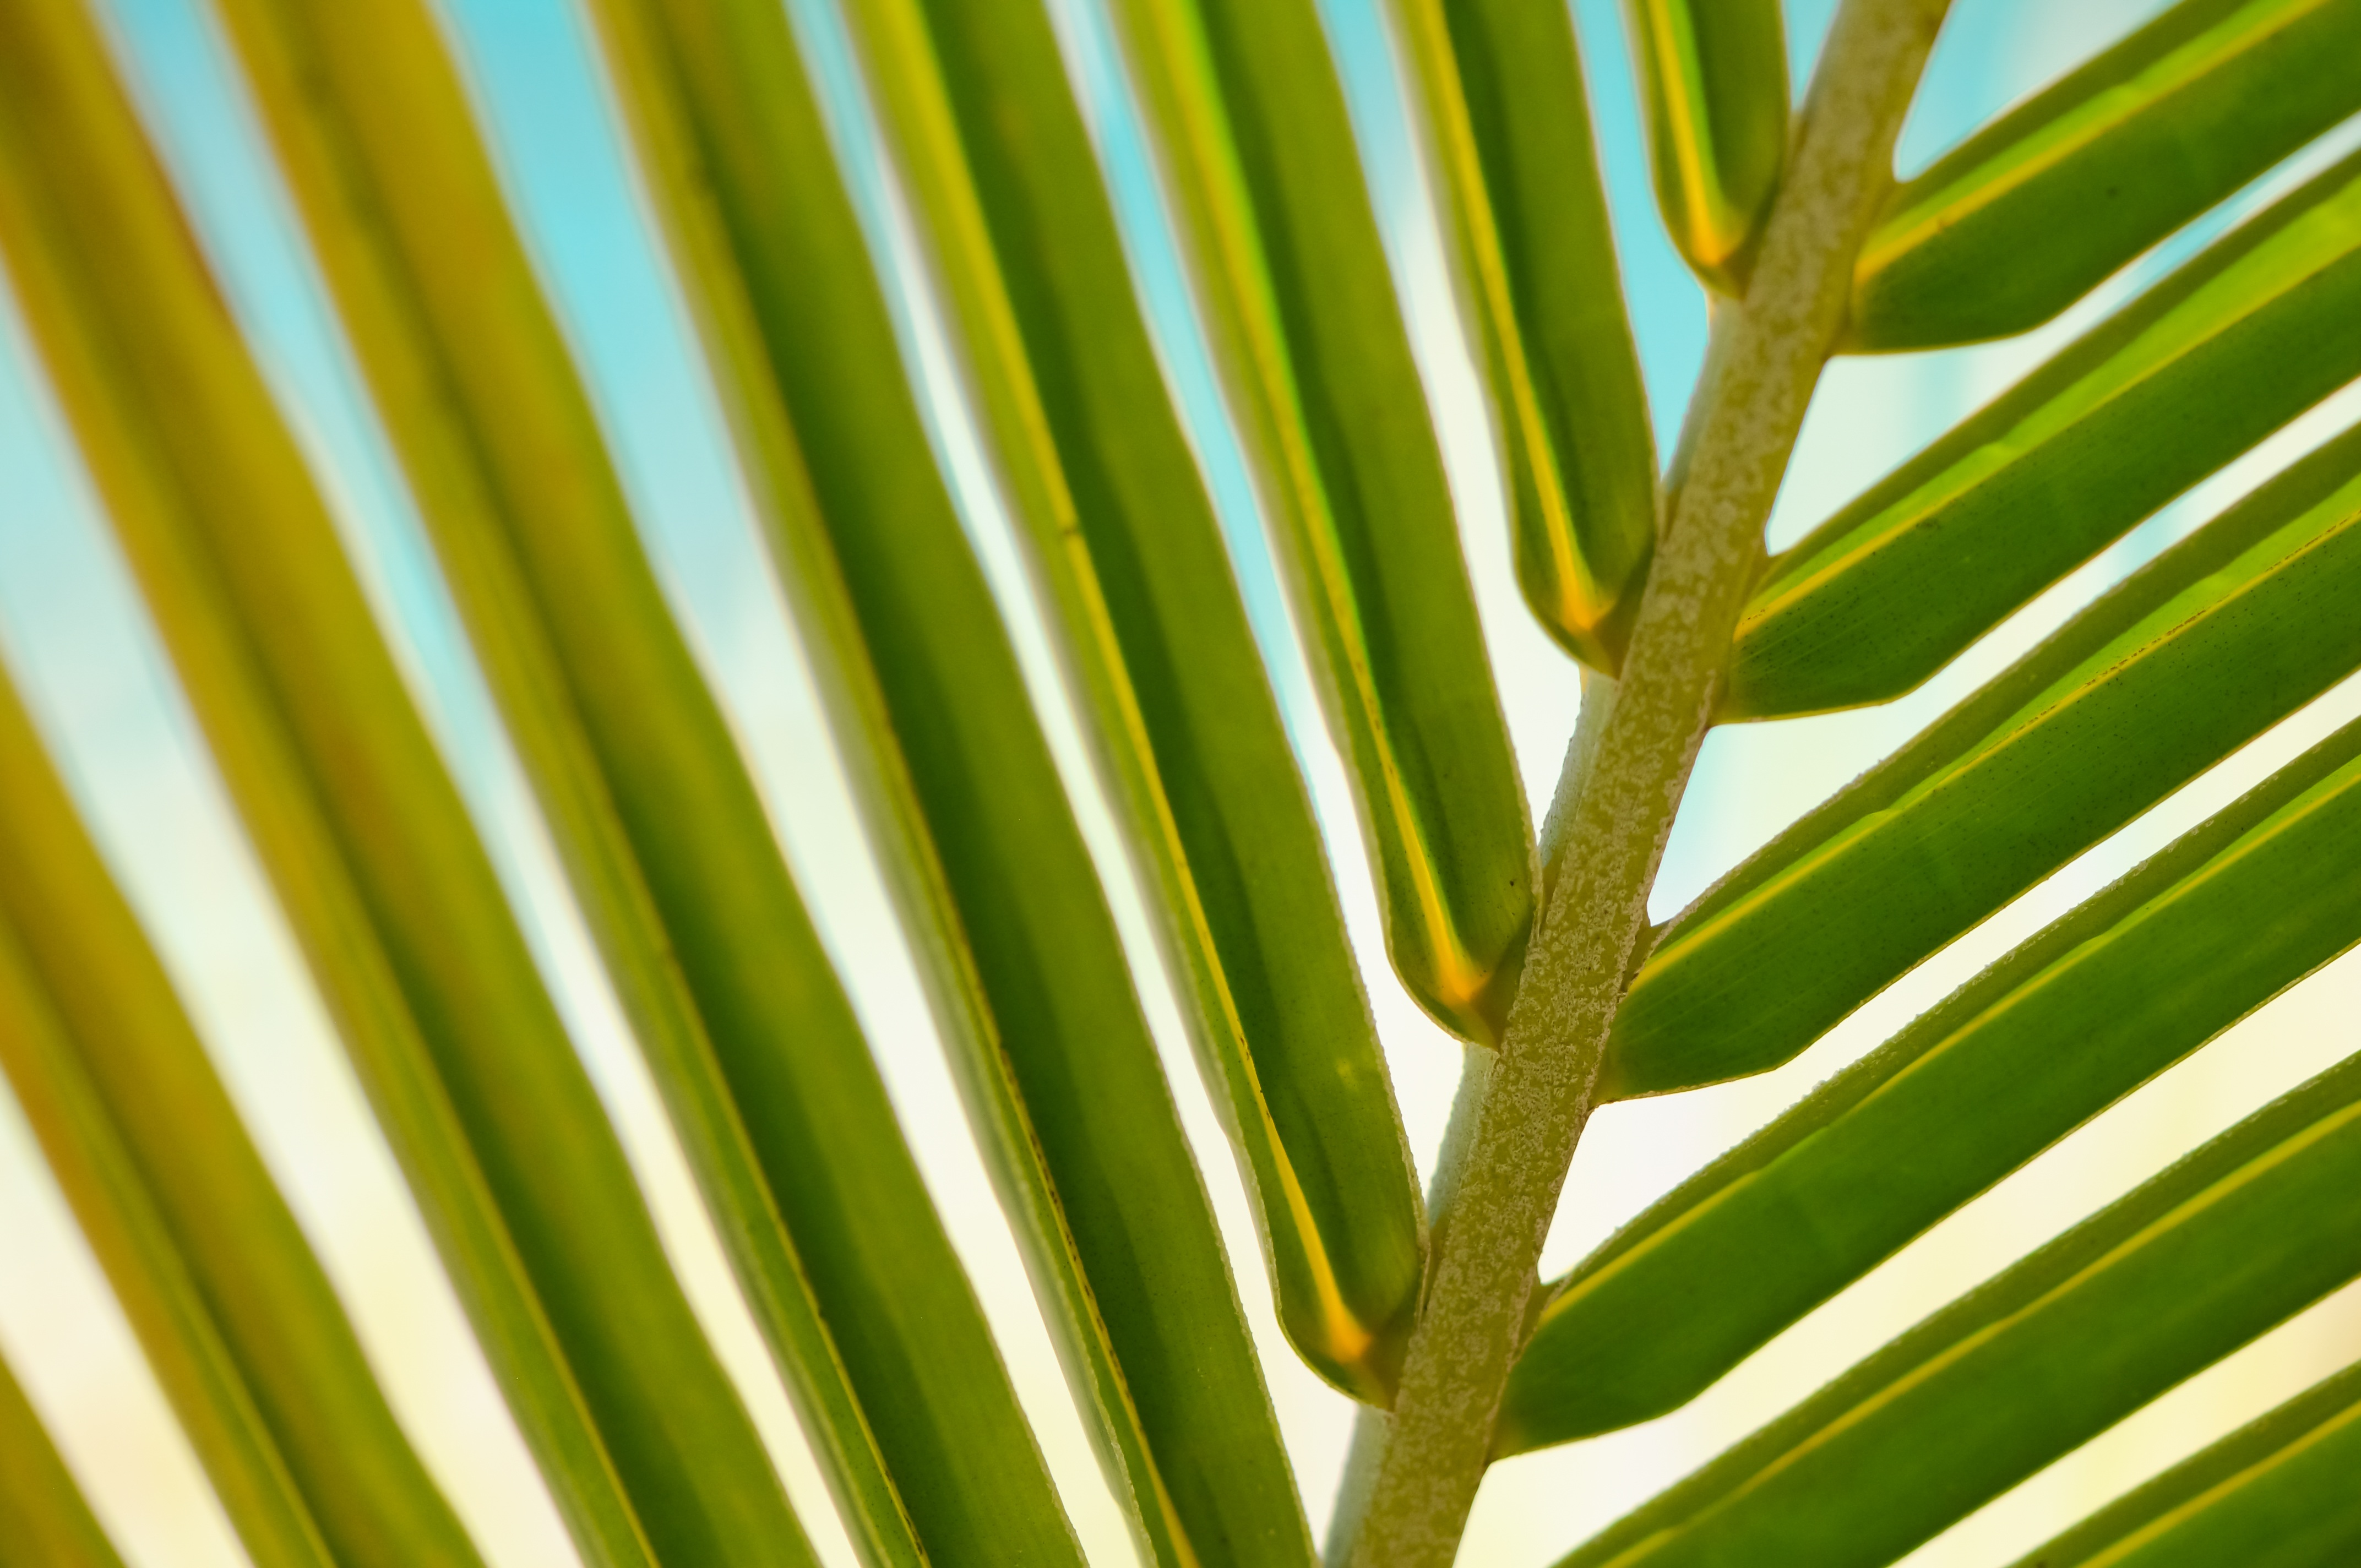 free stock photos of palm leaves pexels